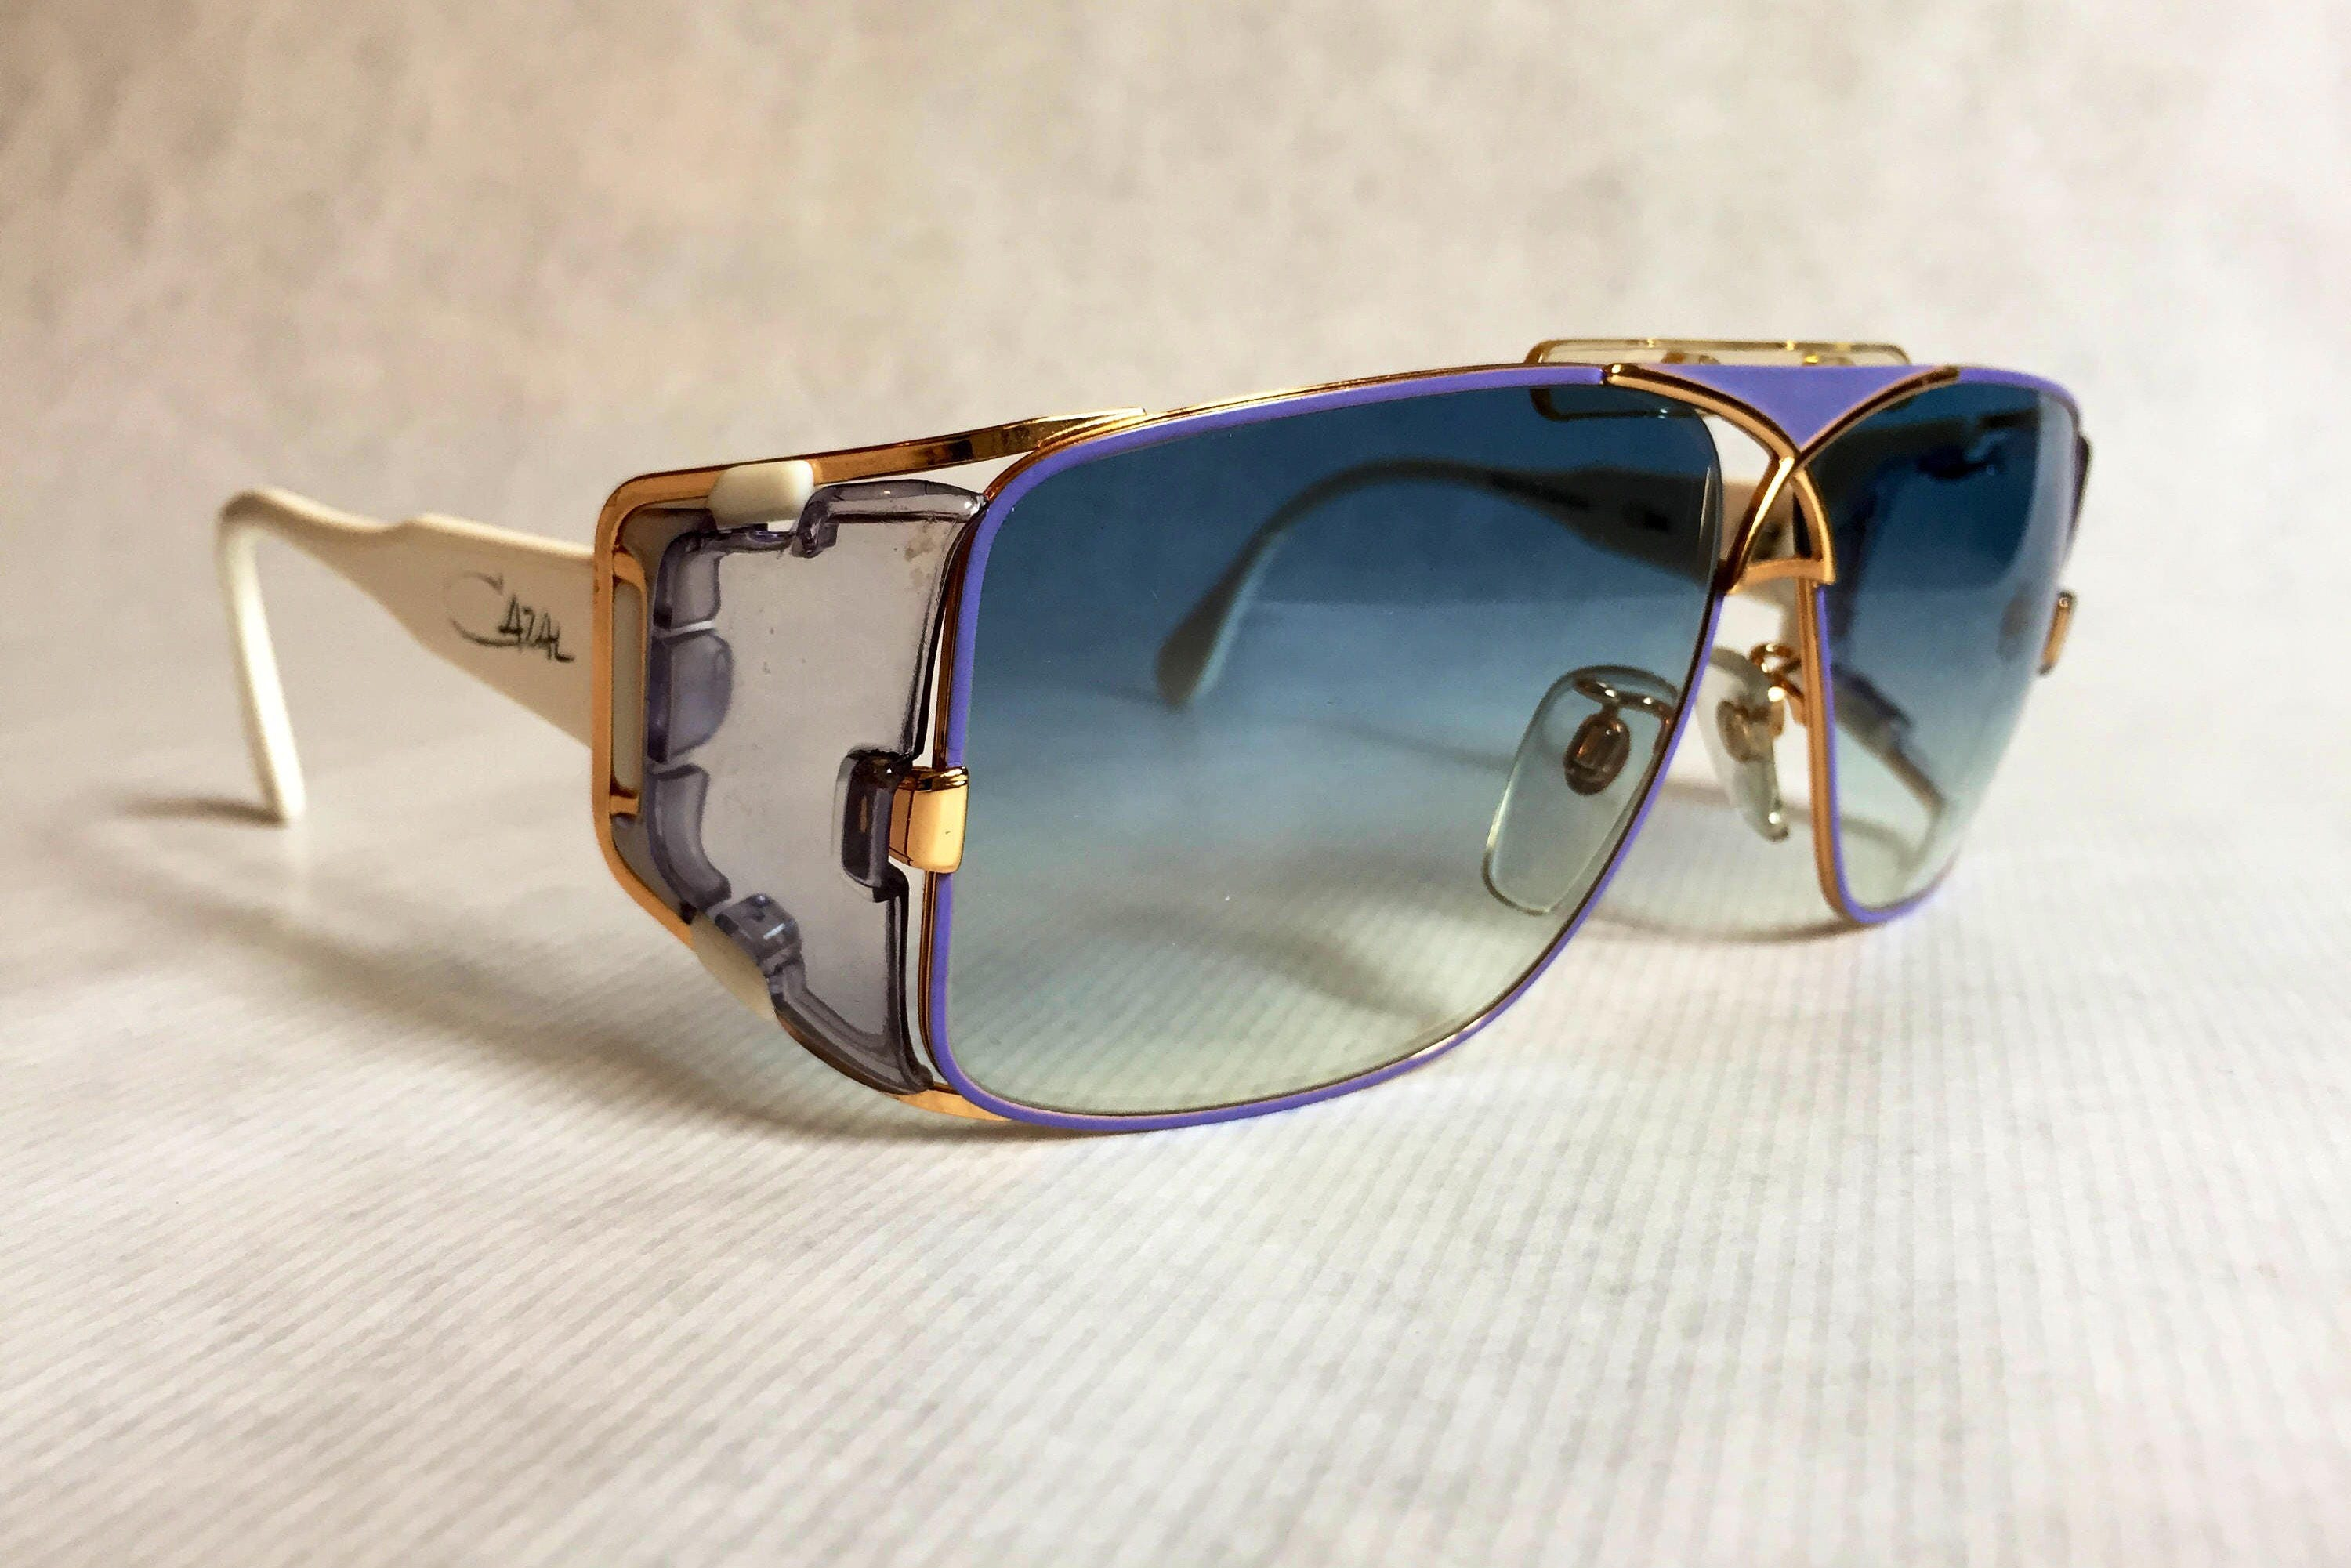 576d4ae64f4 Vintage Sunglasses With Leather Side Shields « One More Soul